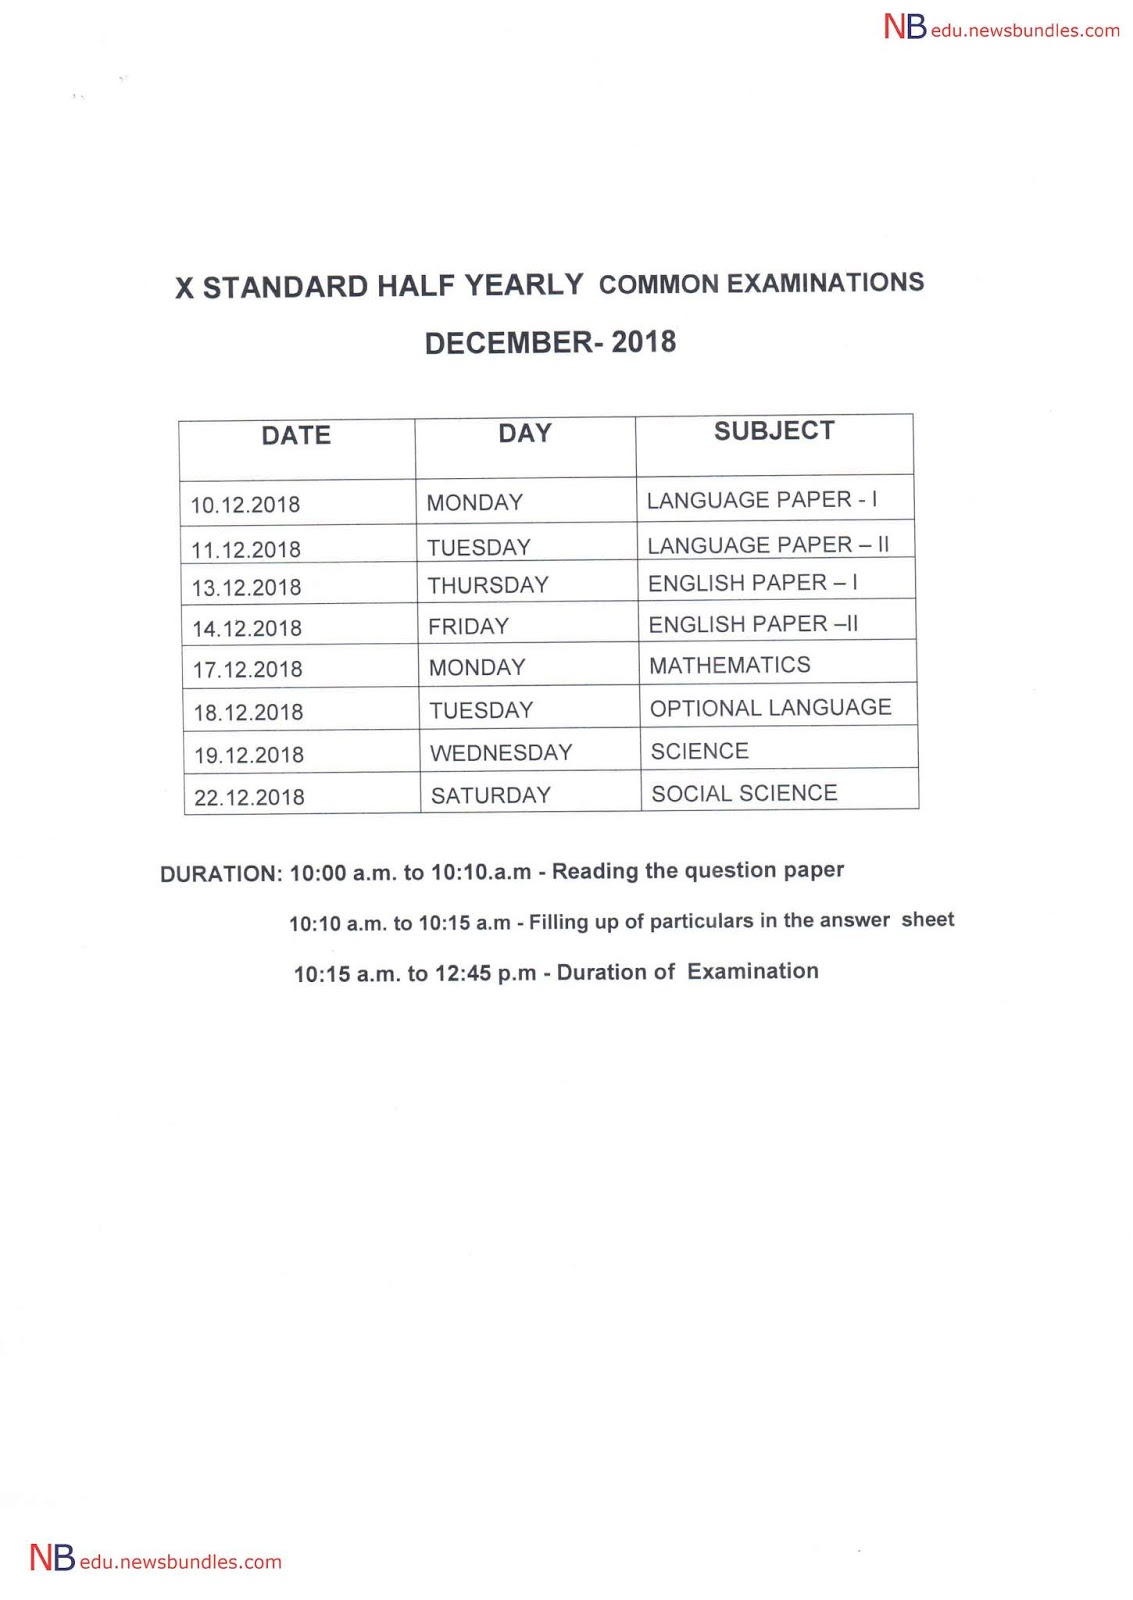 Half Yearly Exam Time Table for 10th, 11th, 12th Standard